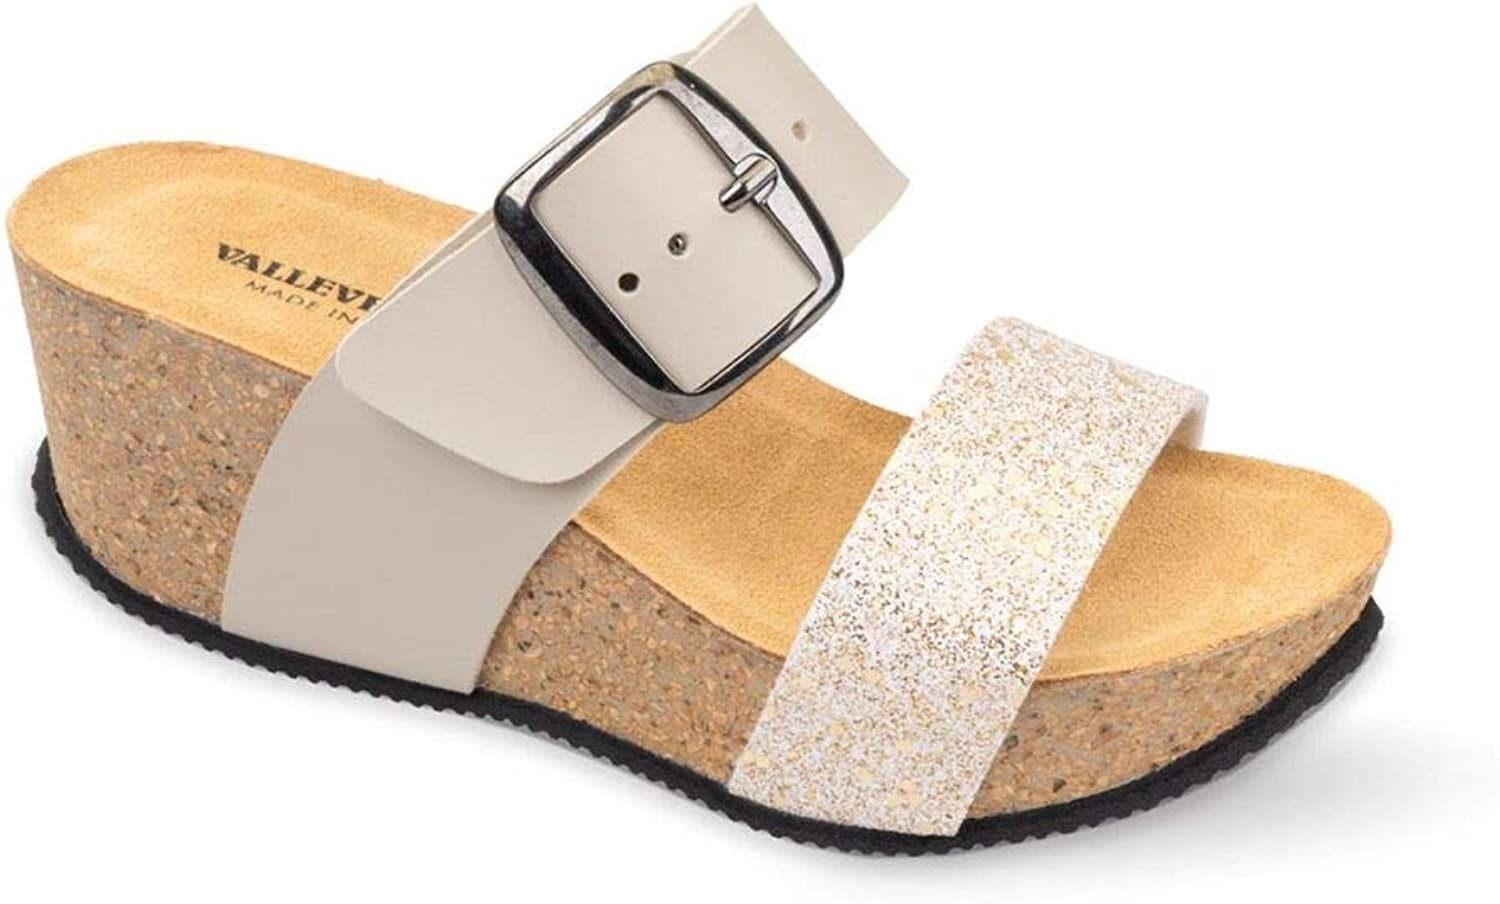 Vallegreen G 51463 Sandal Wedge shoes Woman Beige Glitter Leather Made in